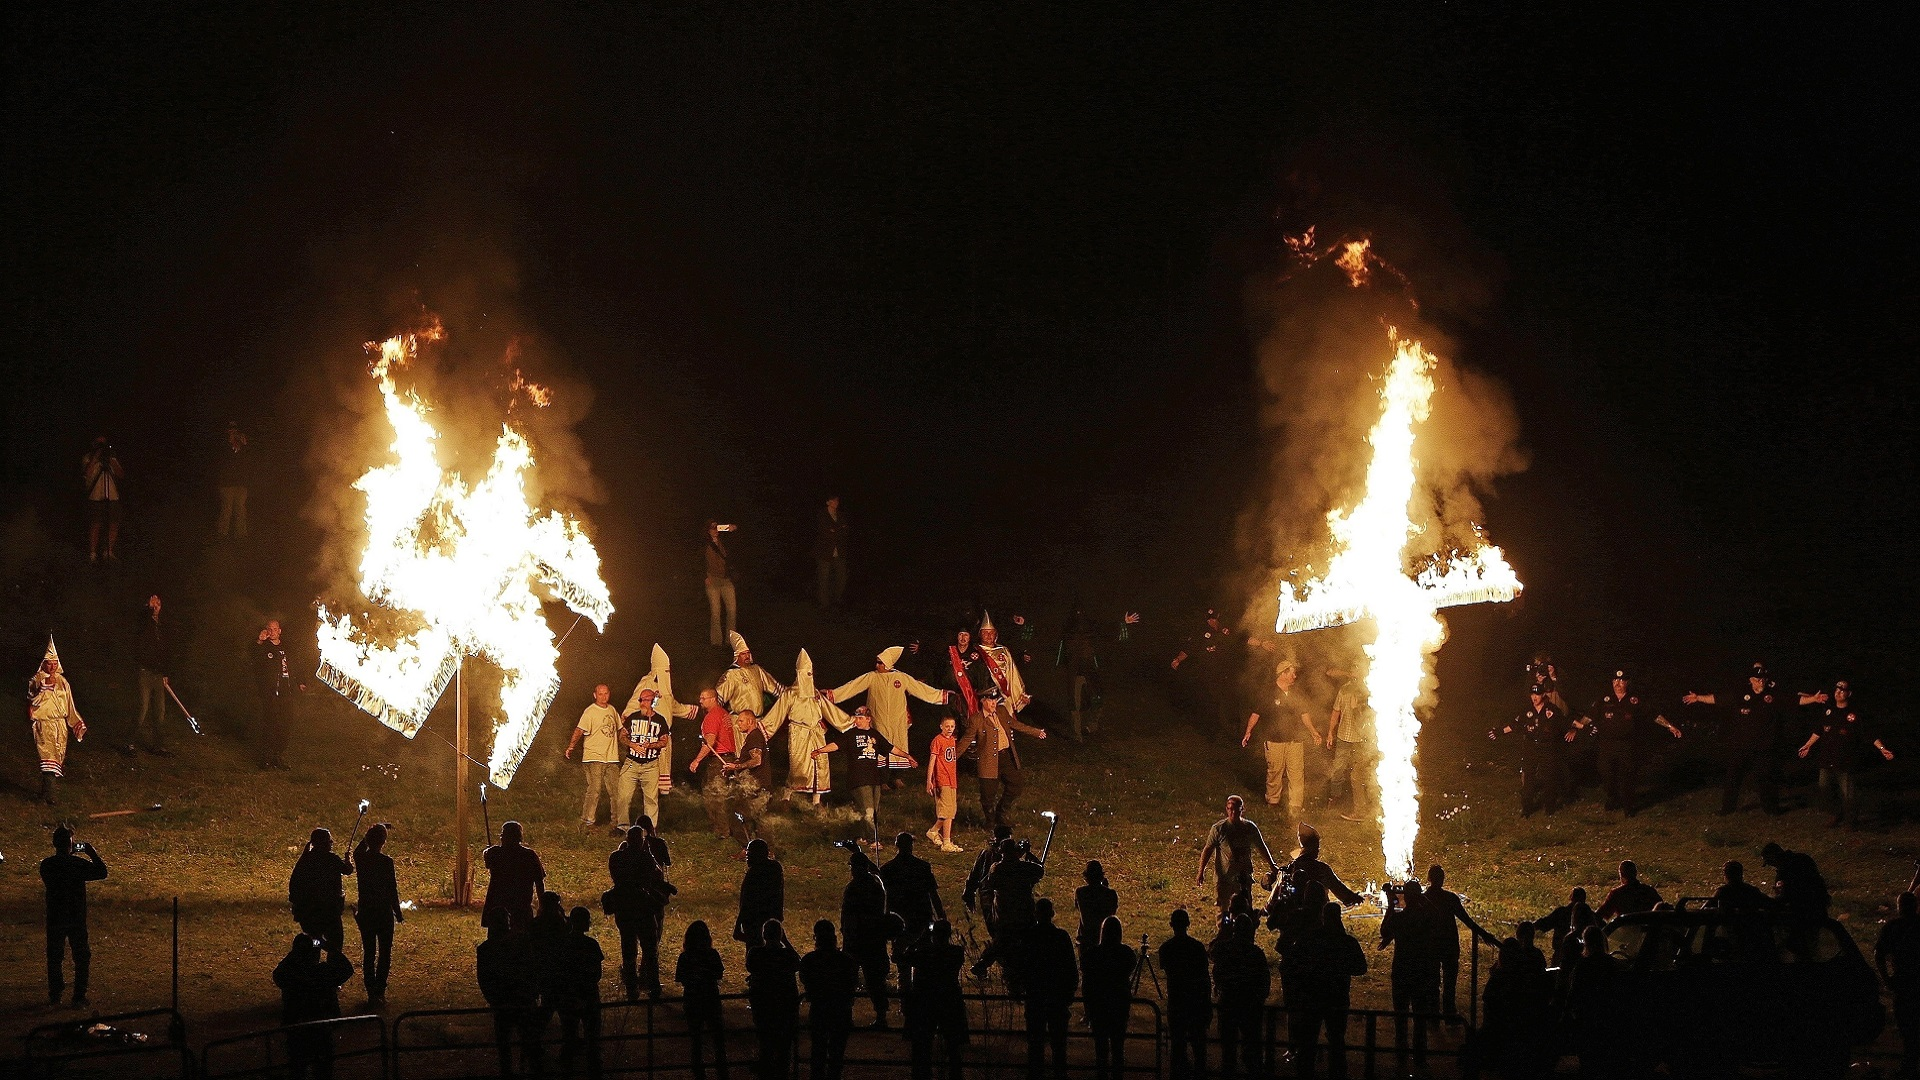 White supremacists believe in genetic 'purity'. Science shows no such thing exists